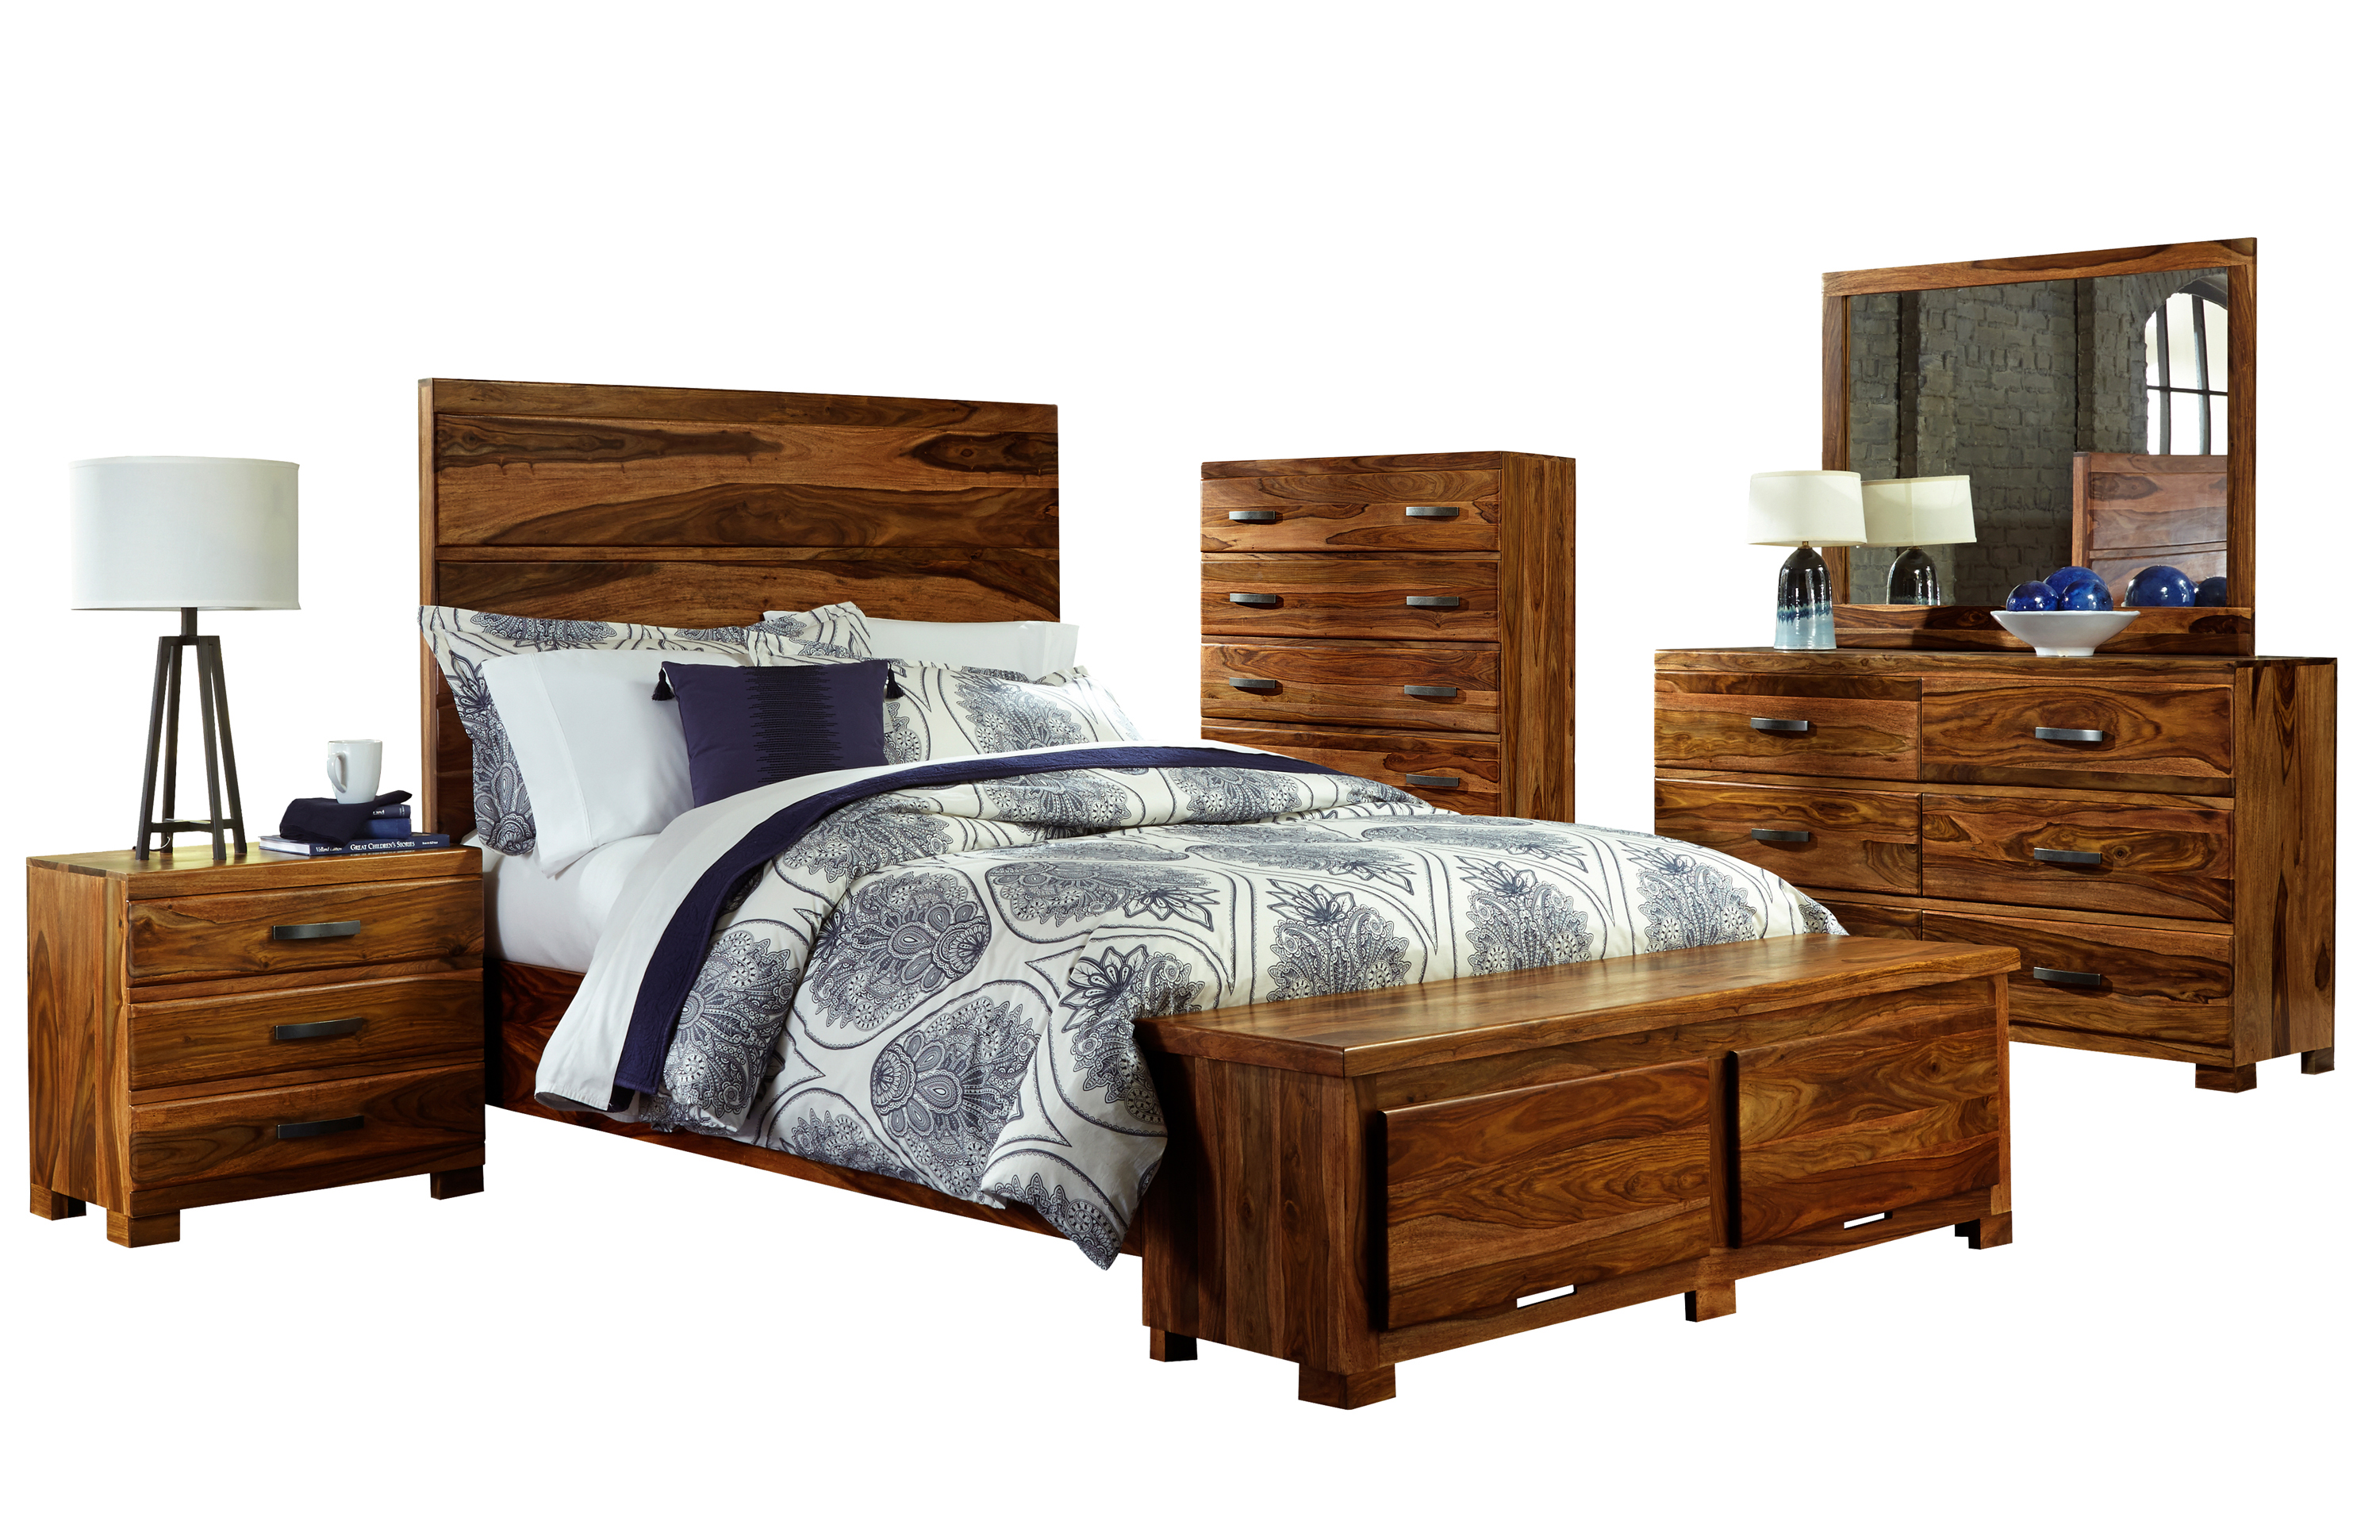 Hillsdale madera 1406bkrs5set 5 piece storage bedroom set for 5 piece bedroom set